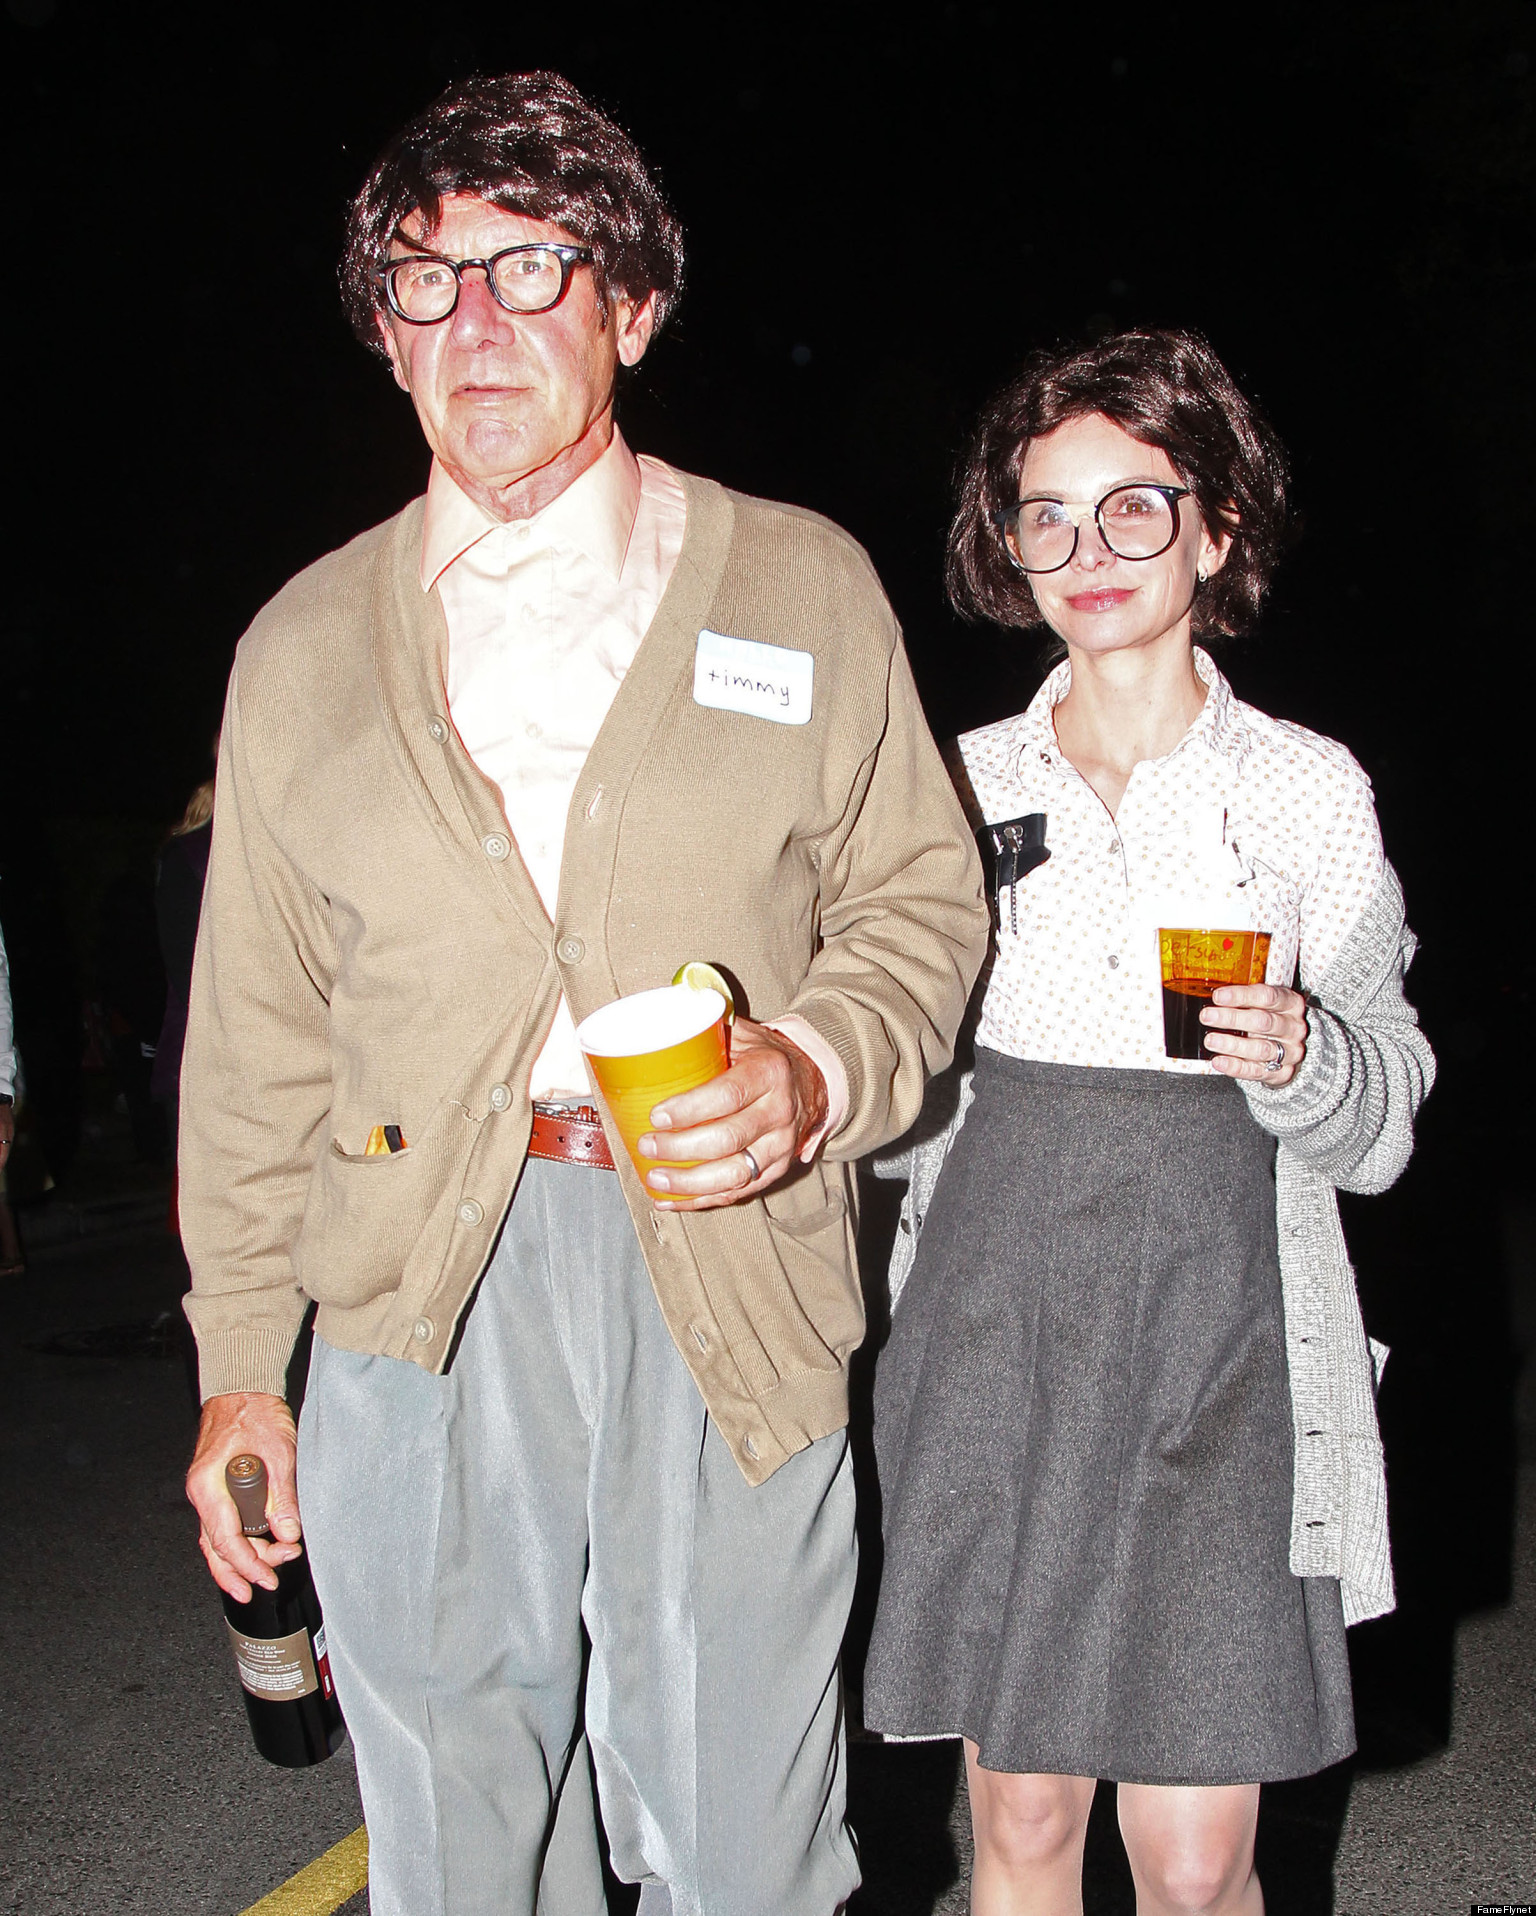 Harrison Ford Calista Flockhart Geek Out For Halloween